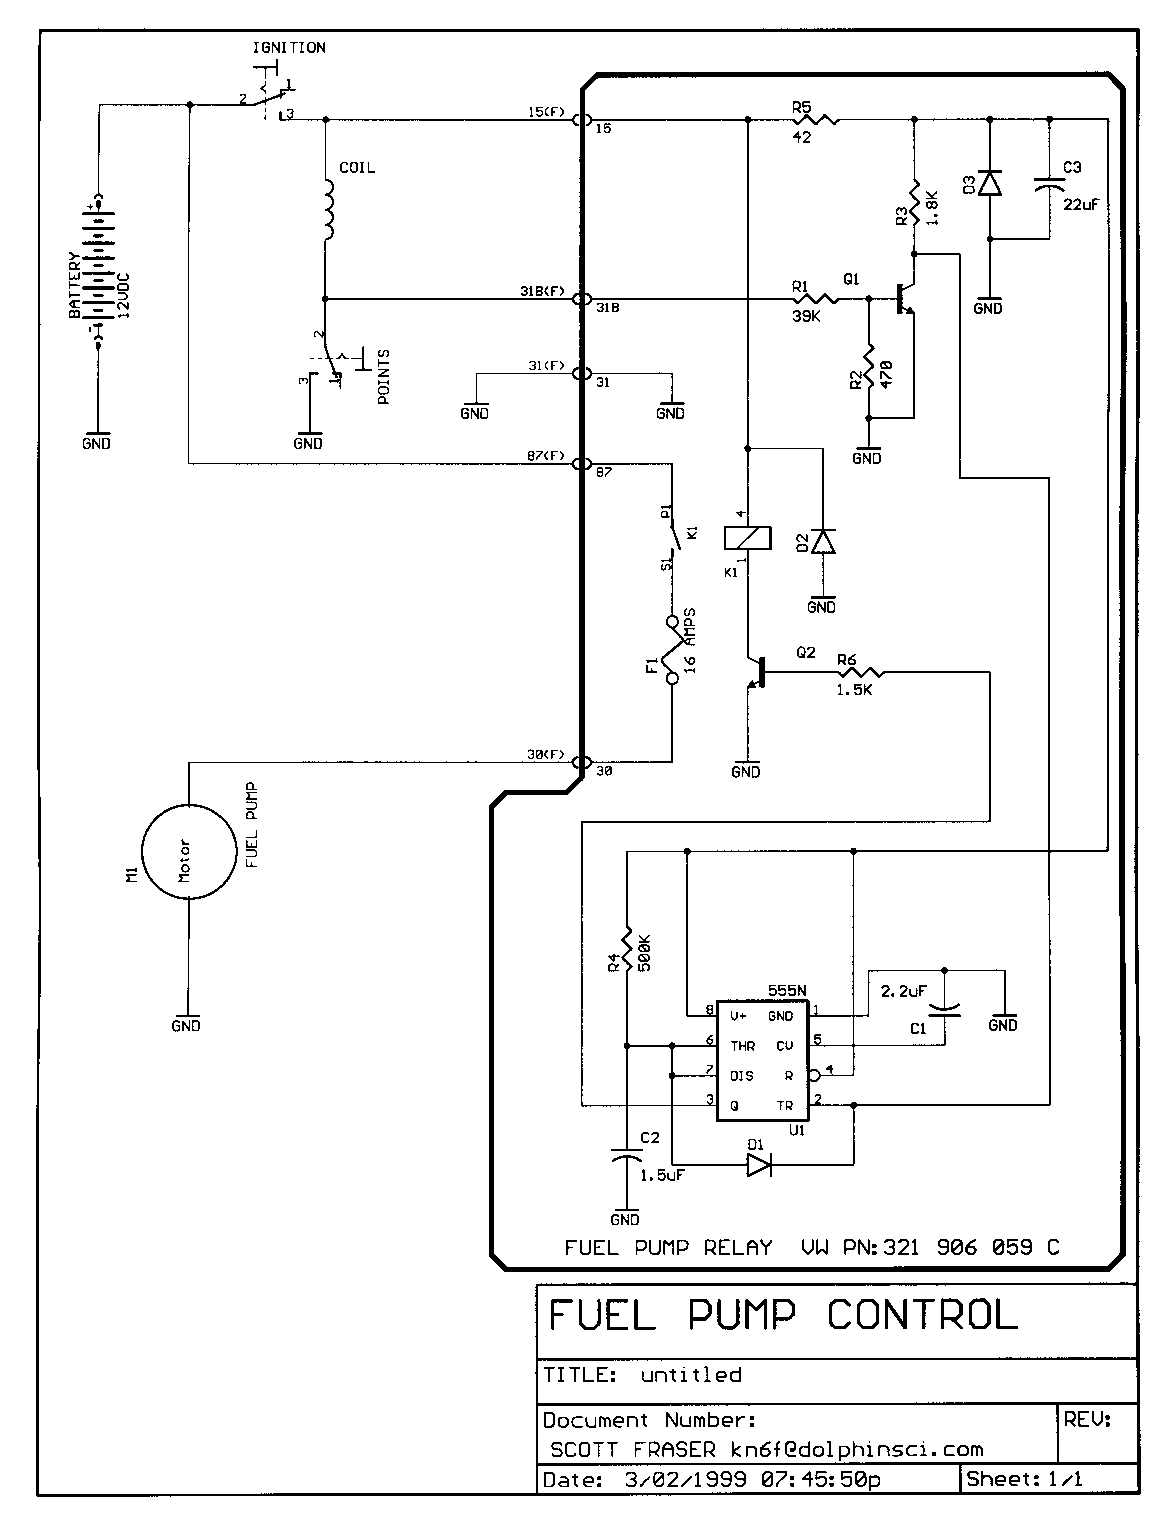 VWfuelPumpRelay thesamba com bay window bus view topic fuel pump wiring fuel pump wiring diagram at virtualis.co